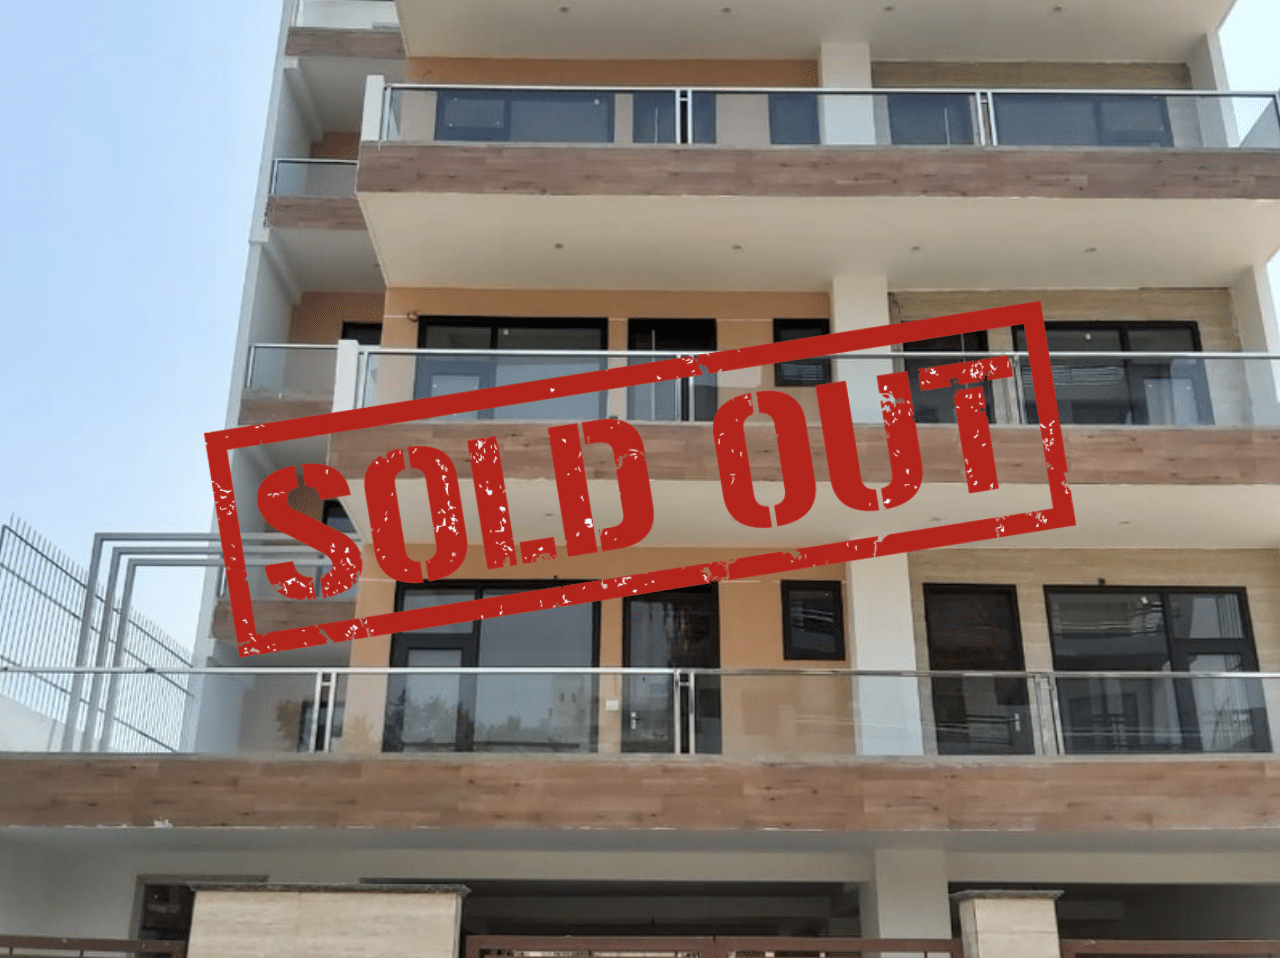 4 BHK Builder Floor in South City 2, Gurgaon Sold Out